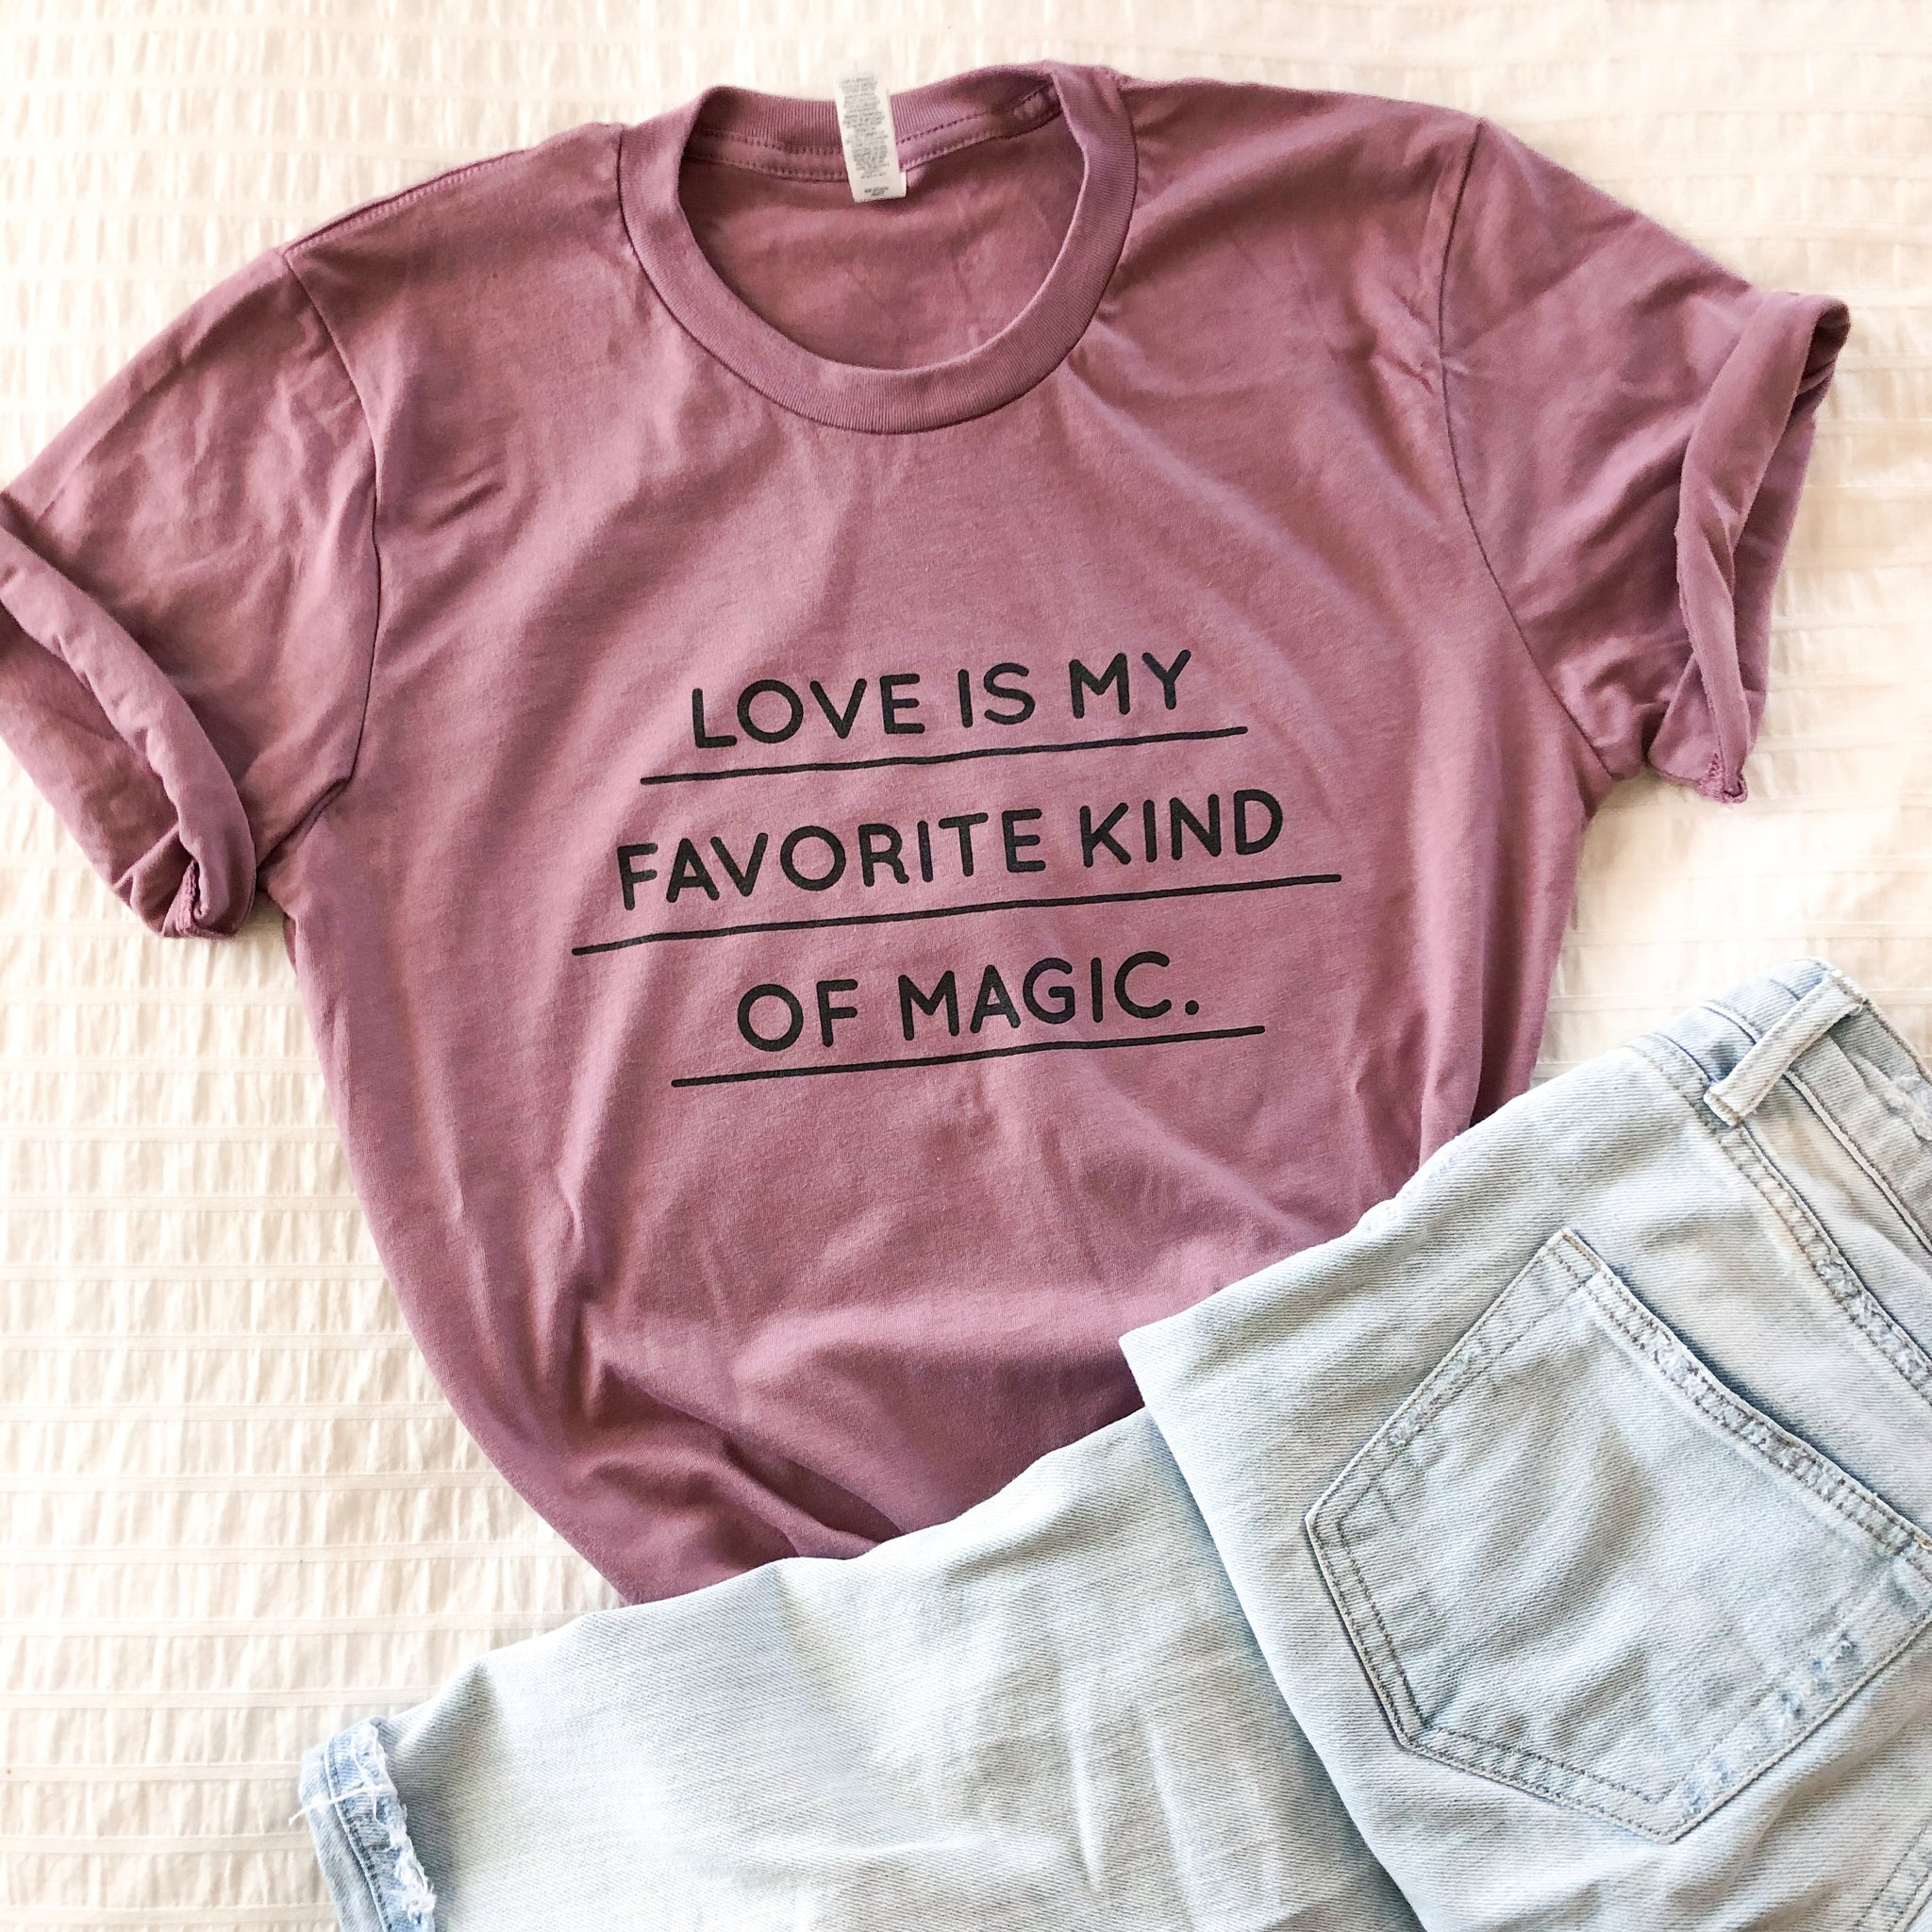 Love is my favorite kind of magic.